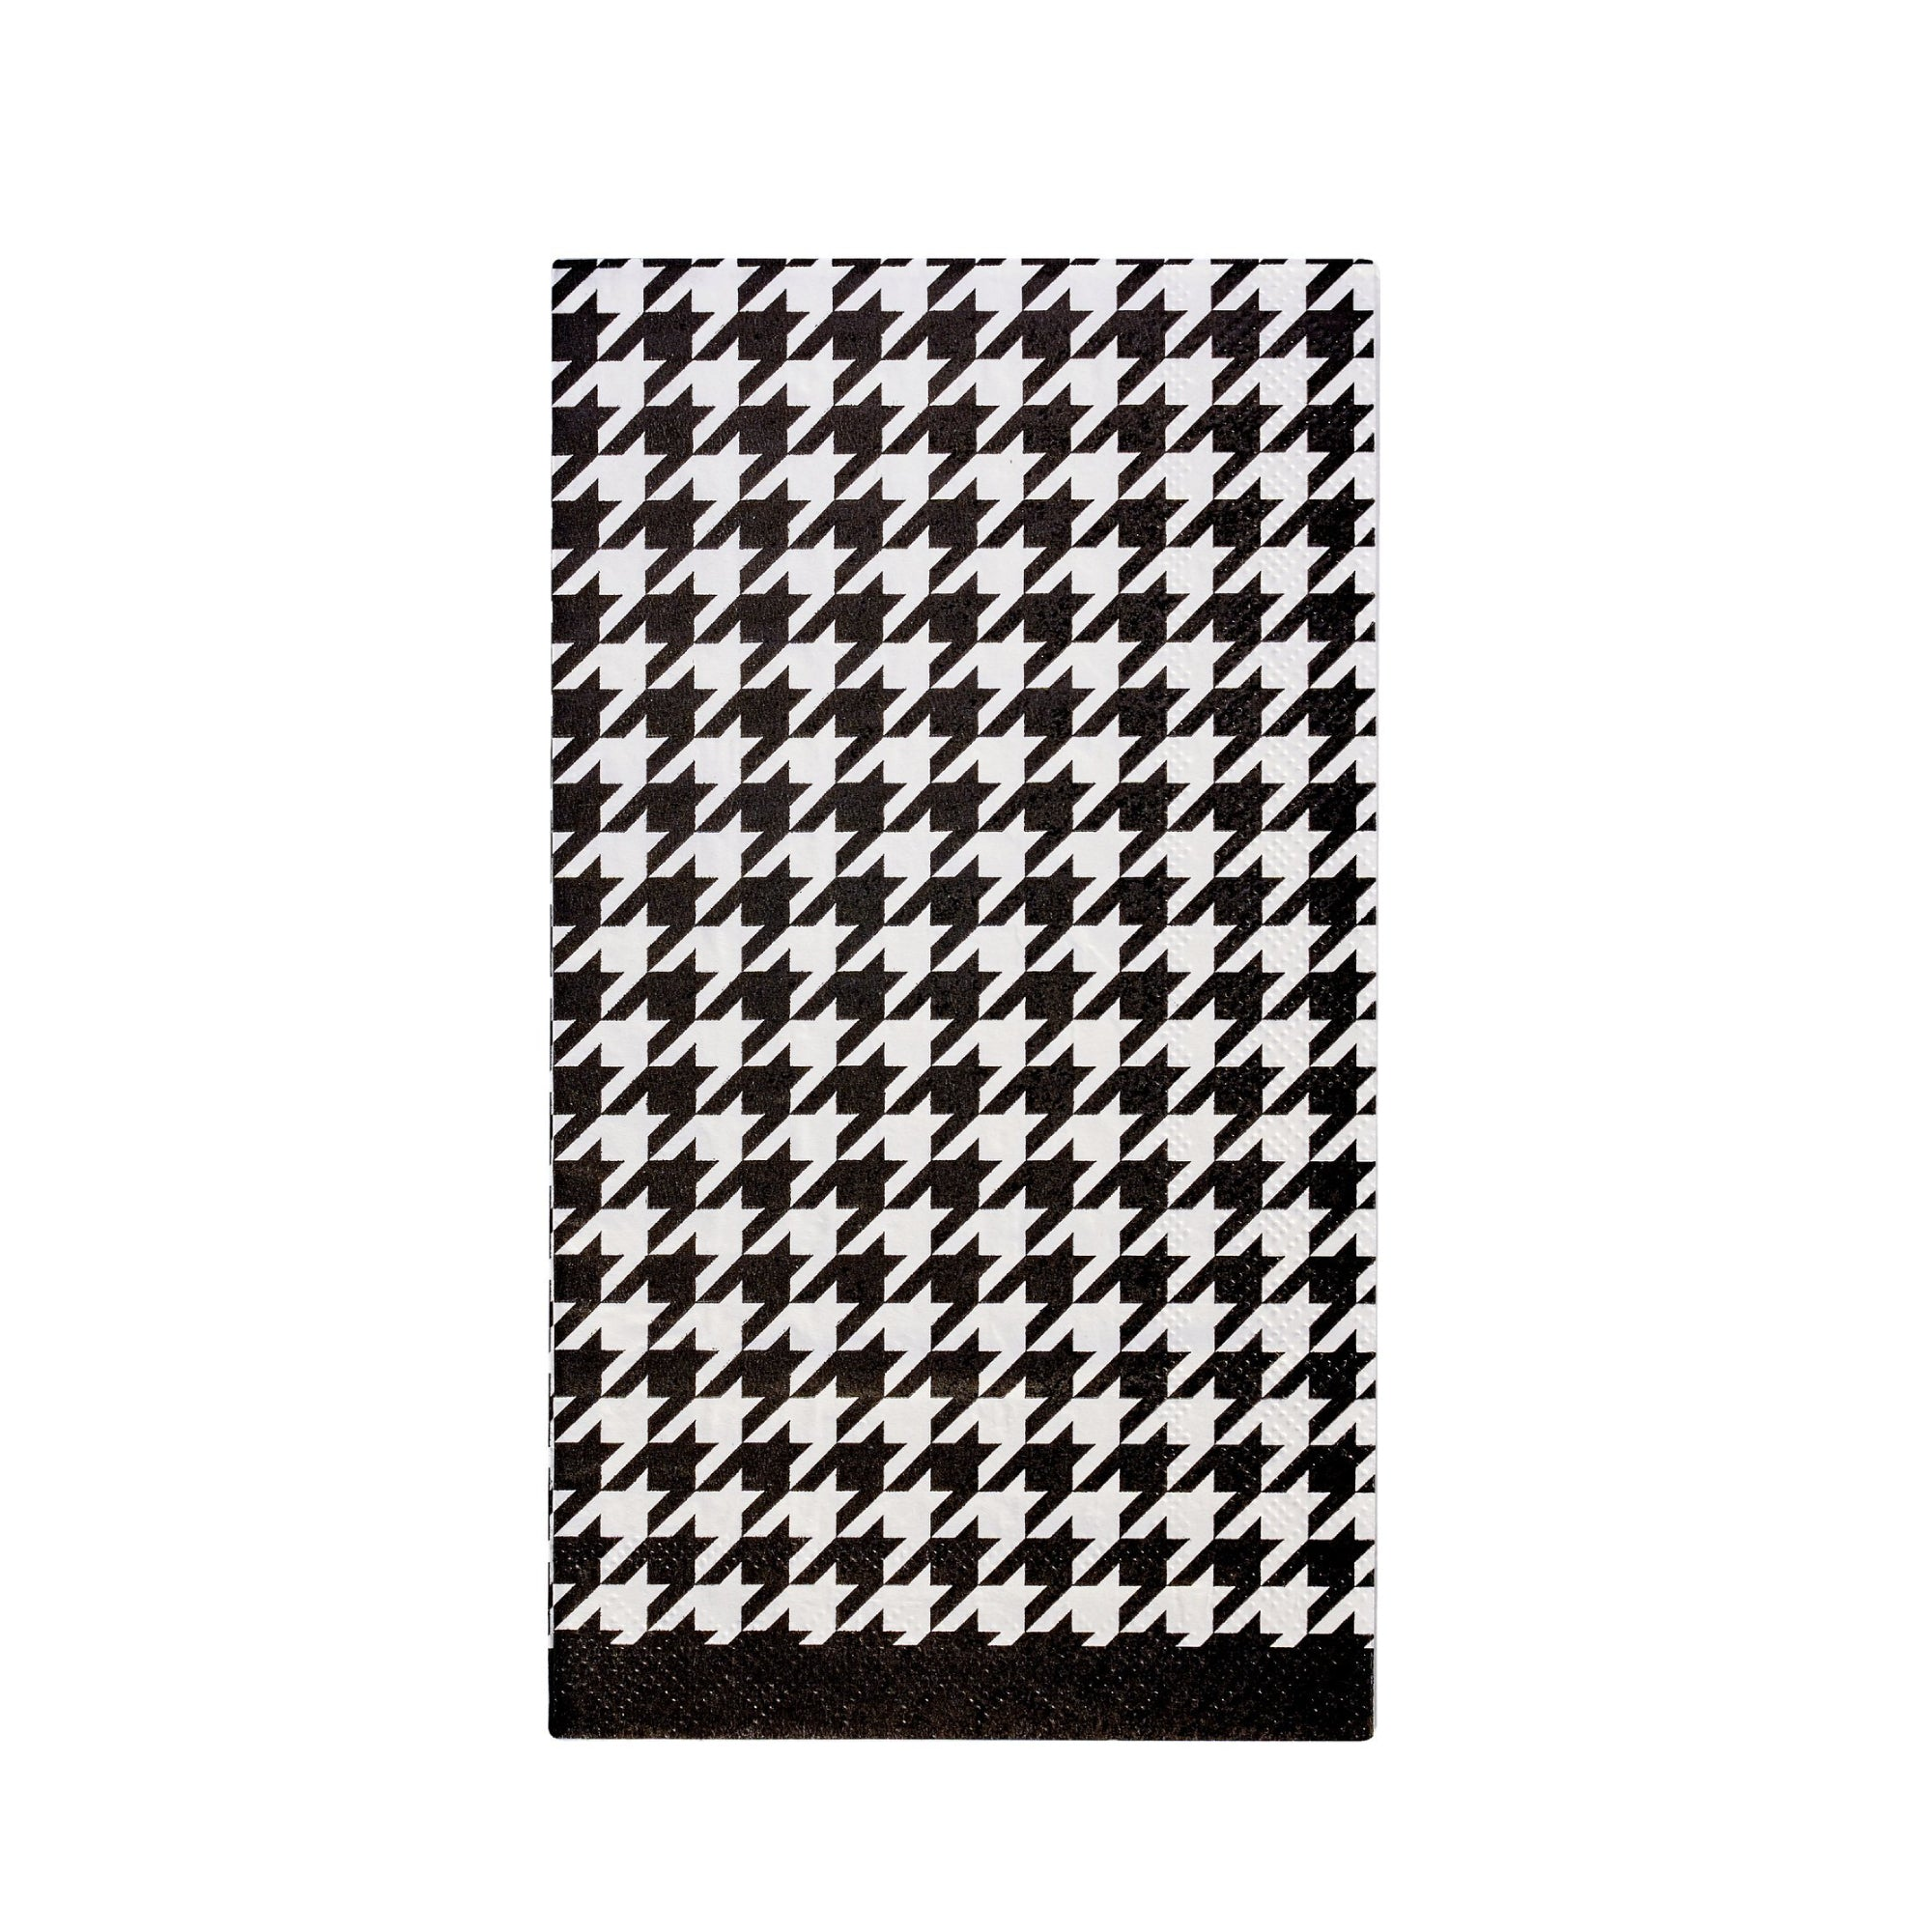 Blanc & Noir Paper Guest Towels 20ct | The Party Darling